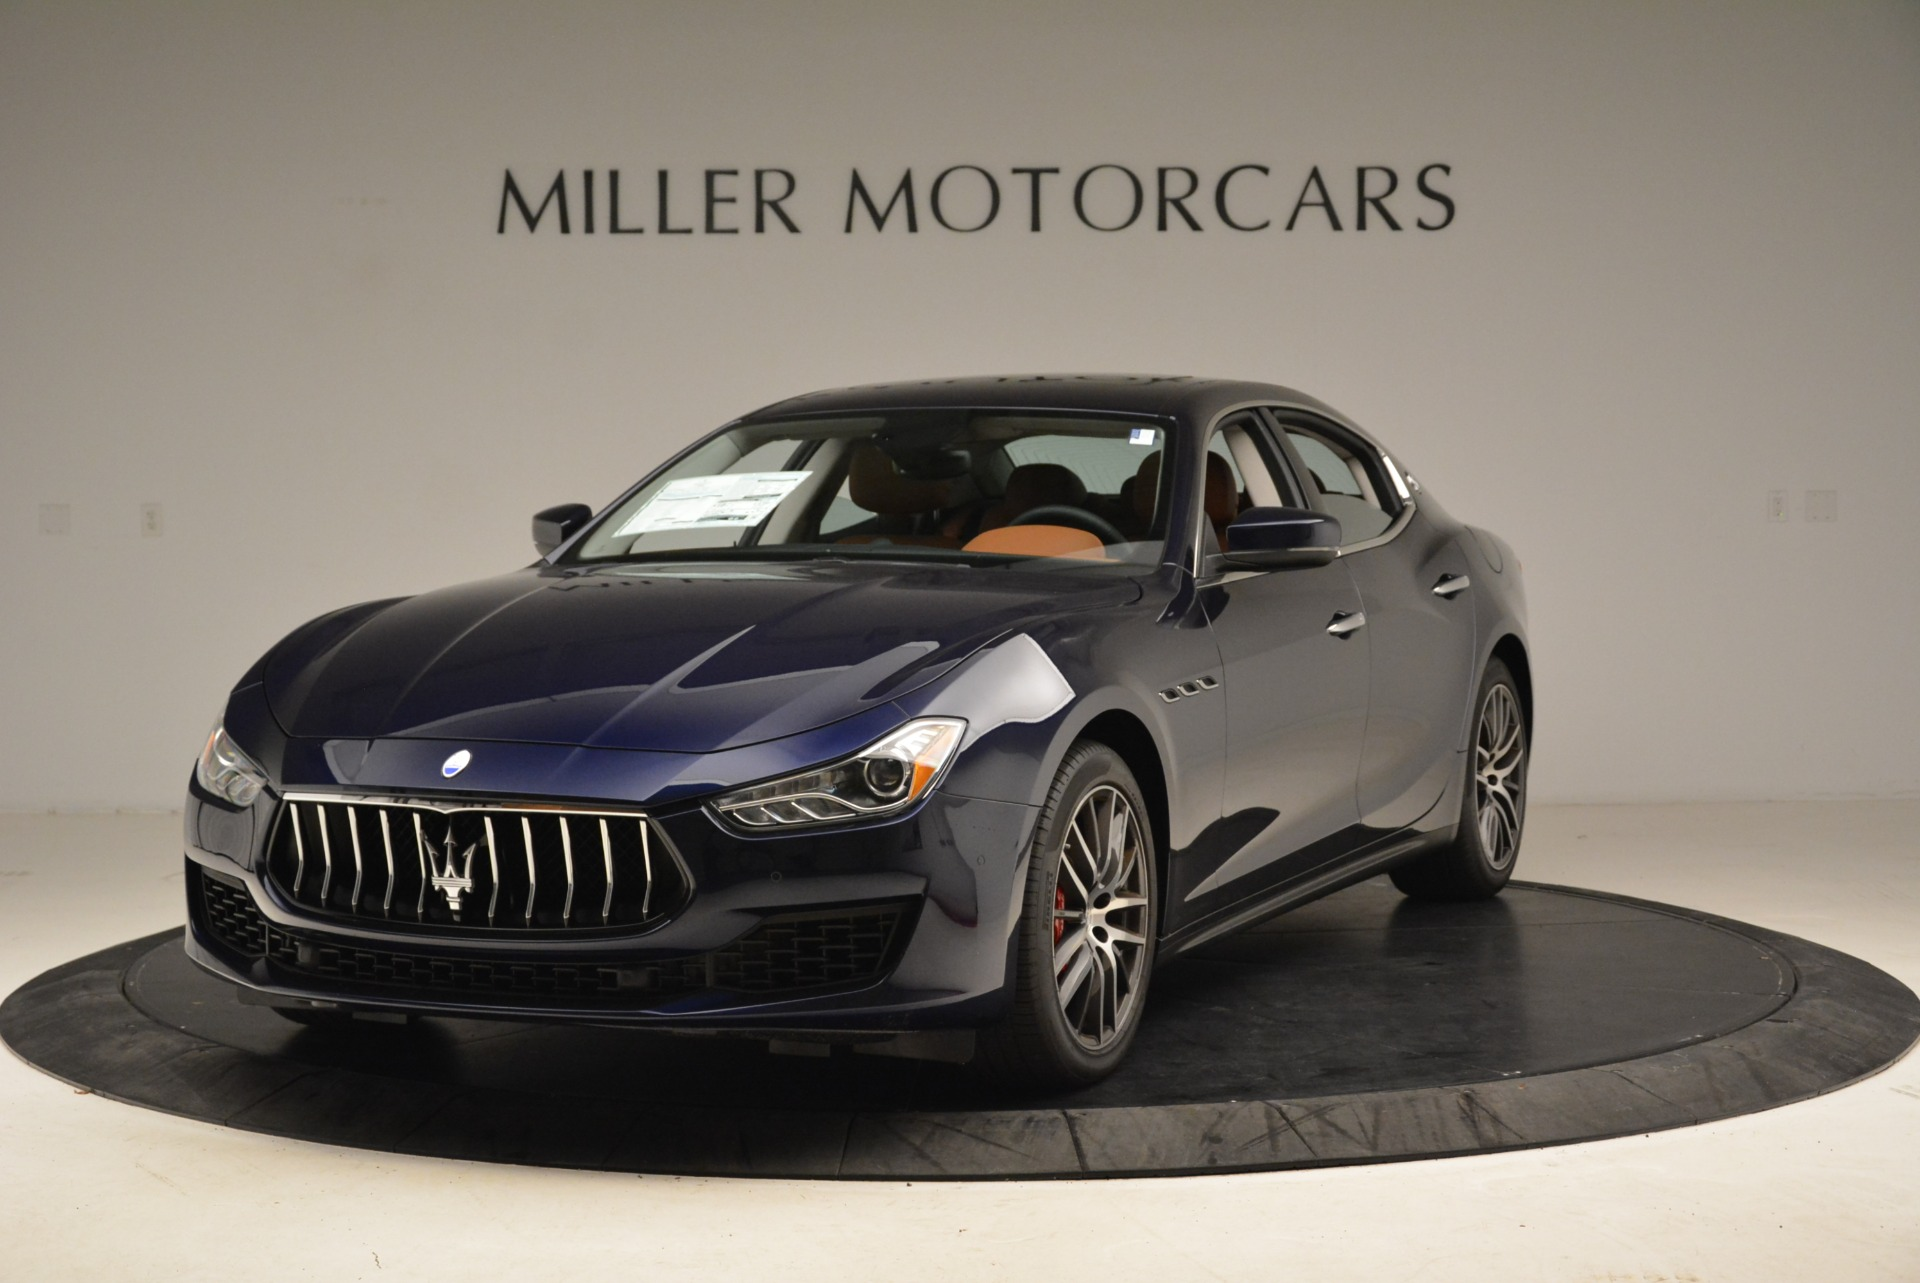 New 2018 Maserati Ghibli S Q4 For Sale In Greenwich, CT 1800_main